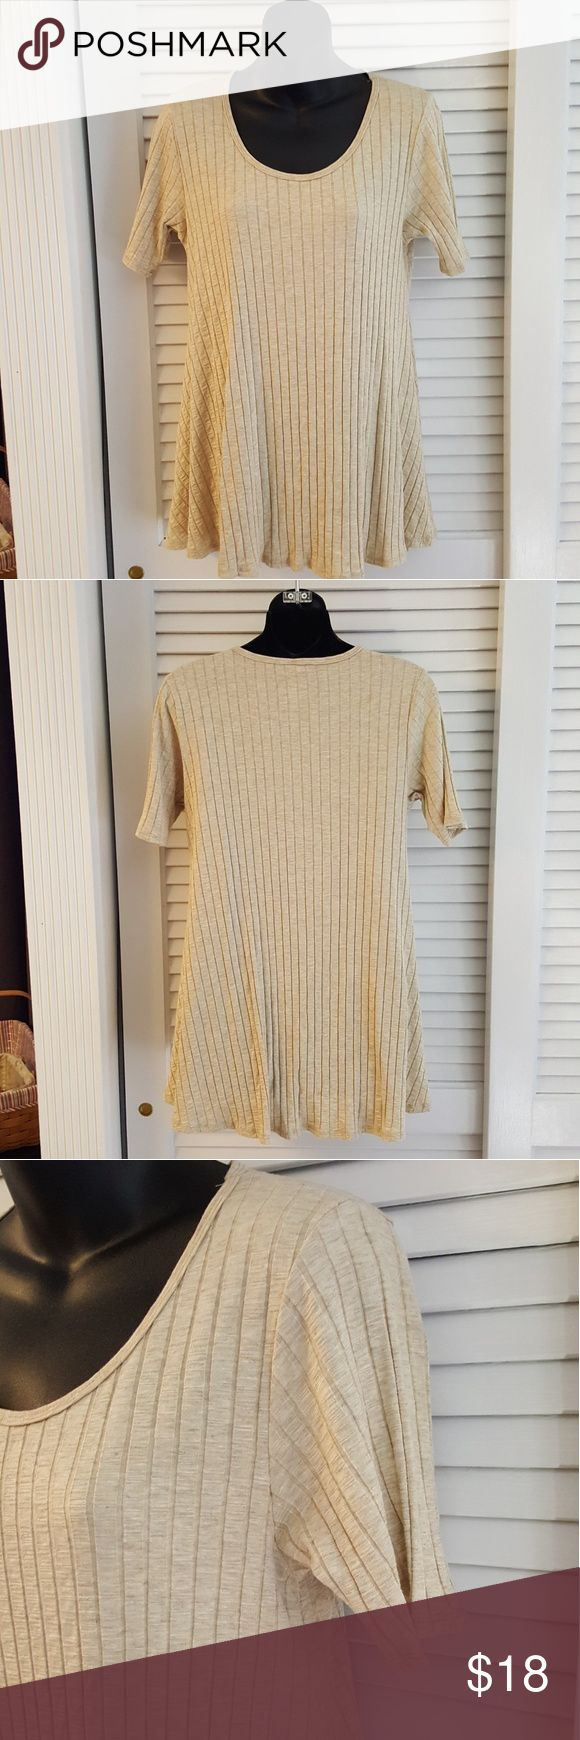 LuLaRoe Short Sleeve Knit Top Size S Pre-Owned LuLaRoe knit top in Size S.  Soft with flexible ribbing, short sleeves and a flowing hemline.  Long length that rests past hips.  Perfect neutral heather beige color.  Great everyday top. Excellent condition. LuLaRoe Tops Tees - Short Sleeve